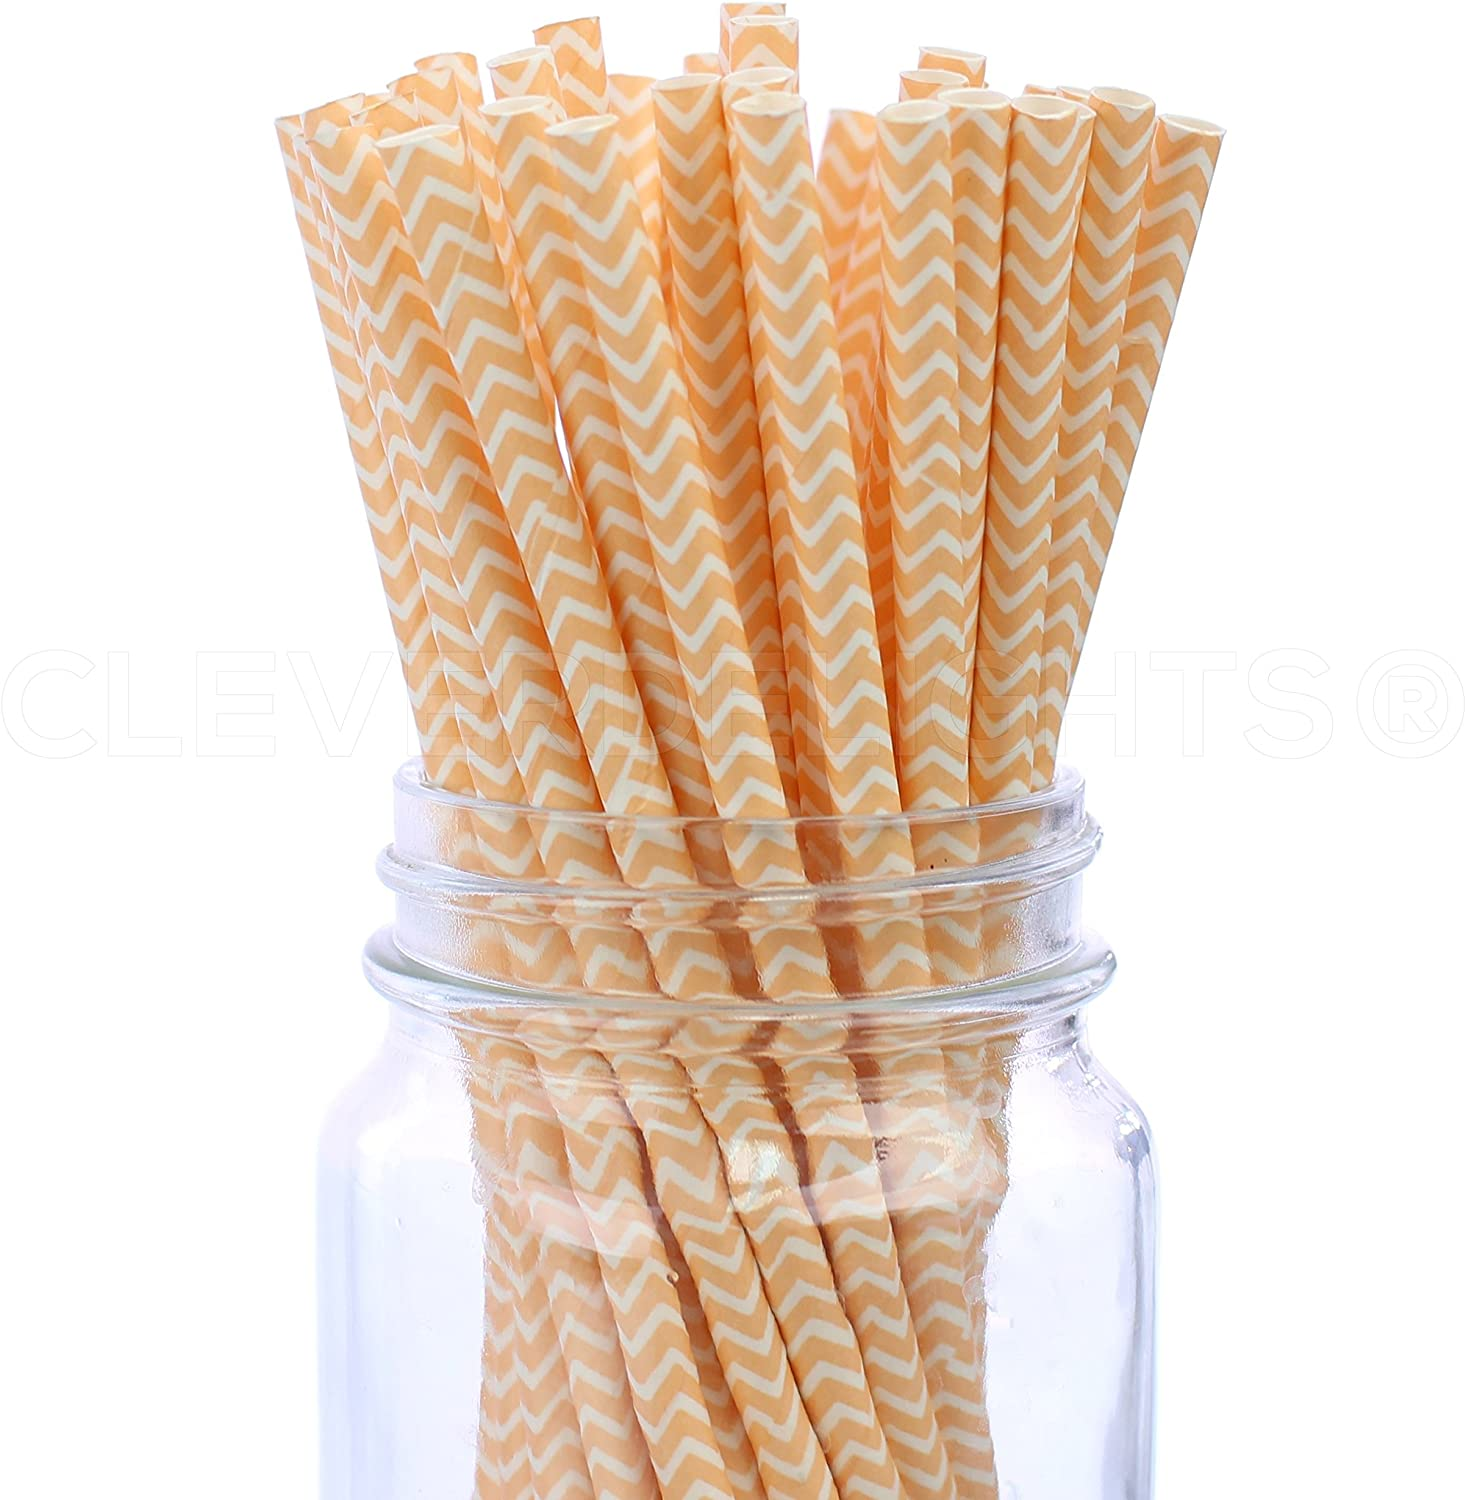 CleverDelights Biodegradable Paper Straws - Peach Chevron - Box of 50